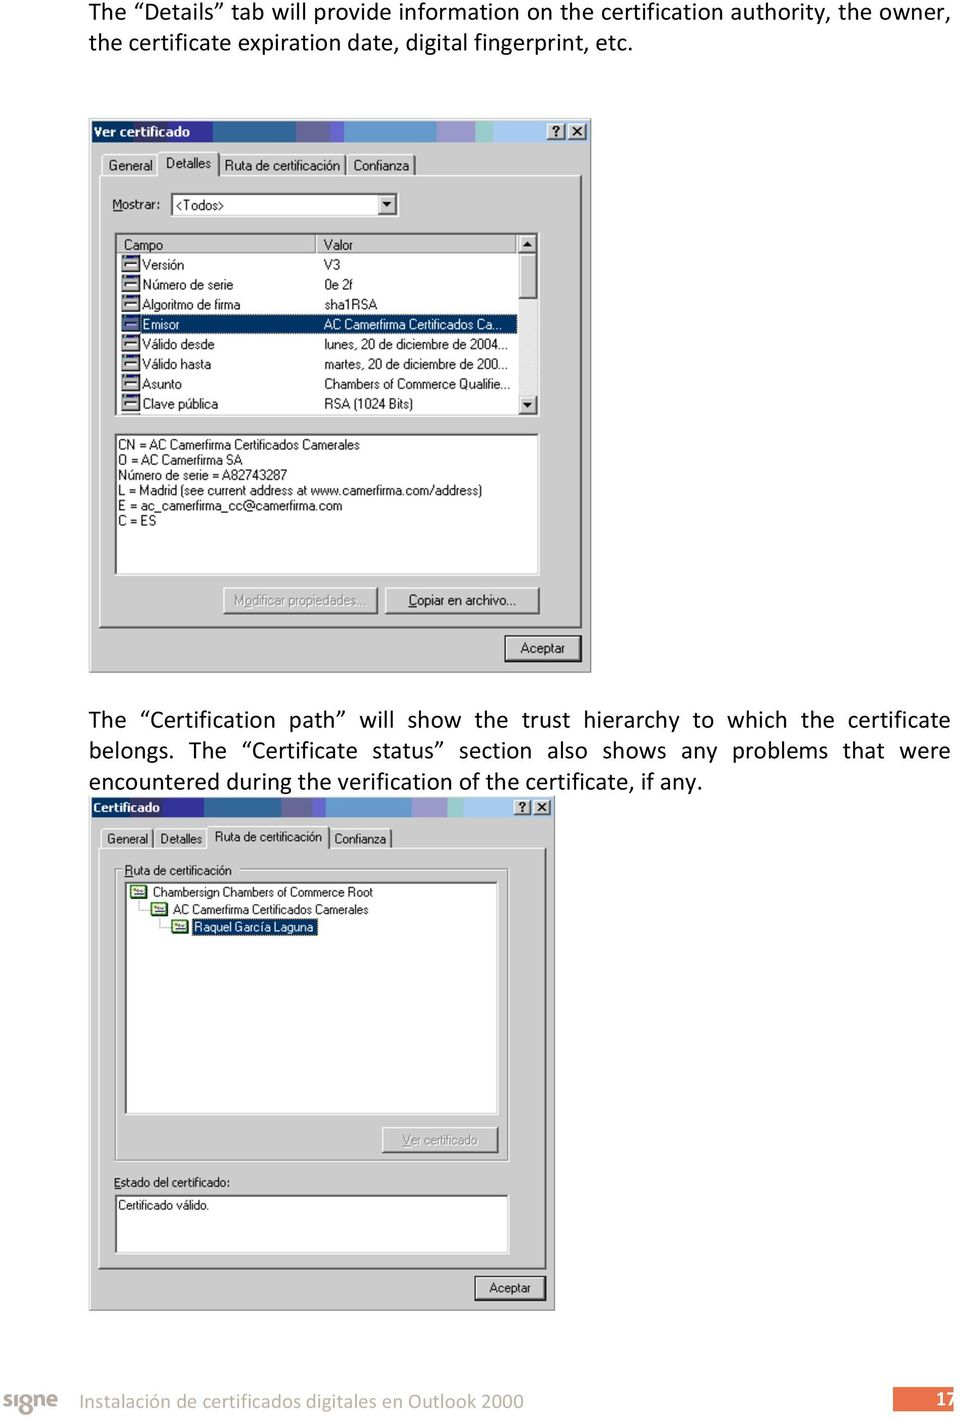 The Certification path will show the trust hierarchy to which the certificate belongs.